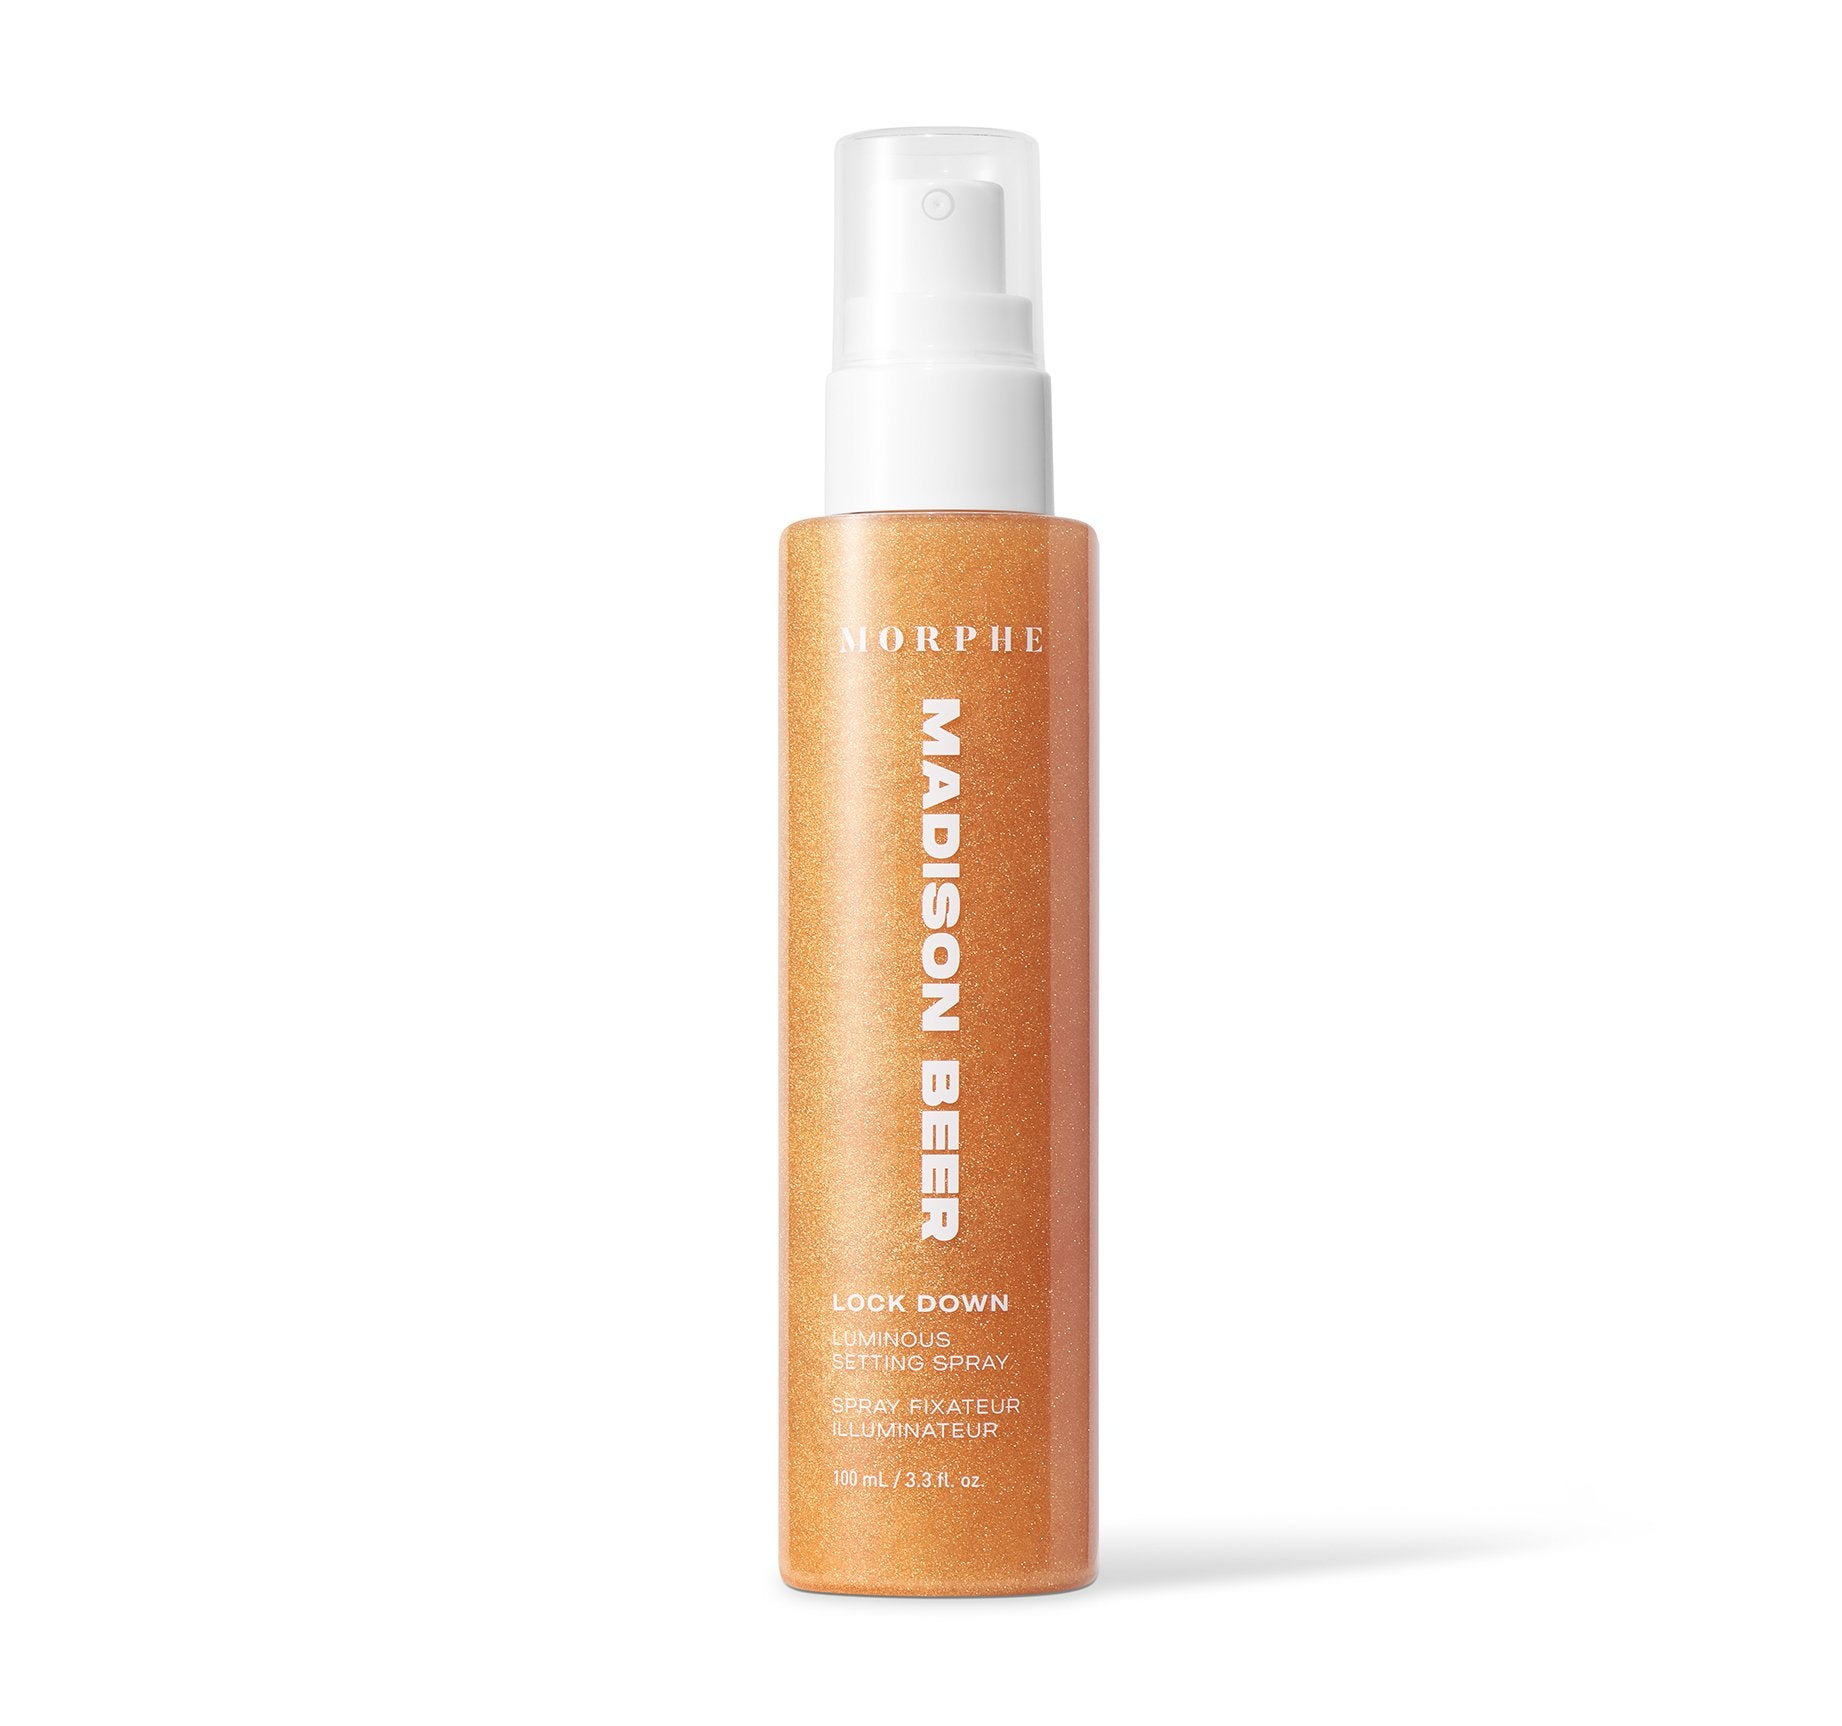 MADISON BEER LUMINOUS SETTING SPRAY - LOCK DOWN, view larger image